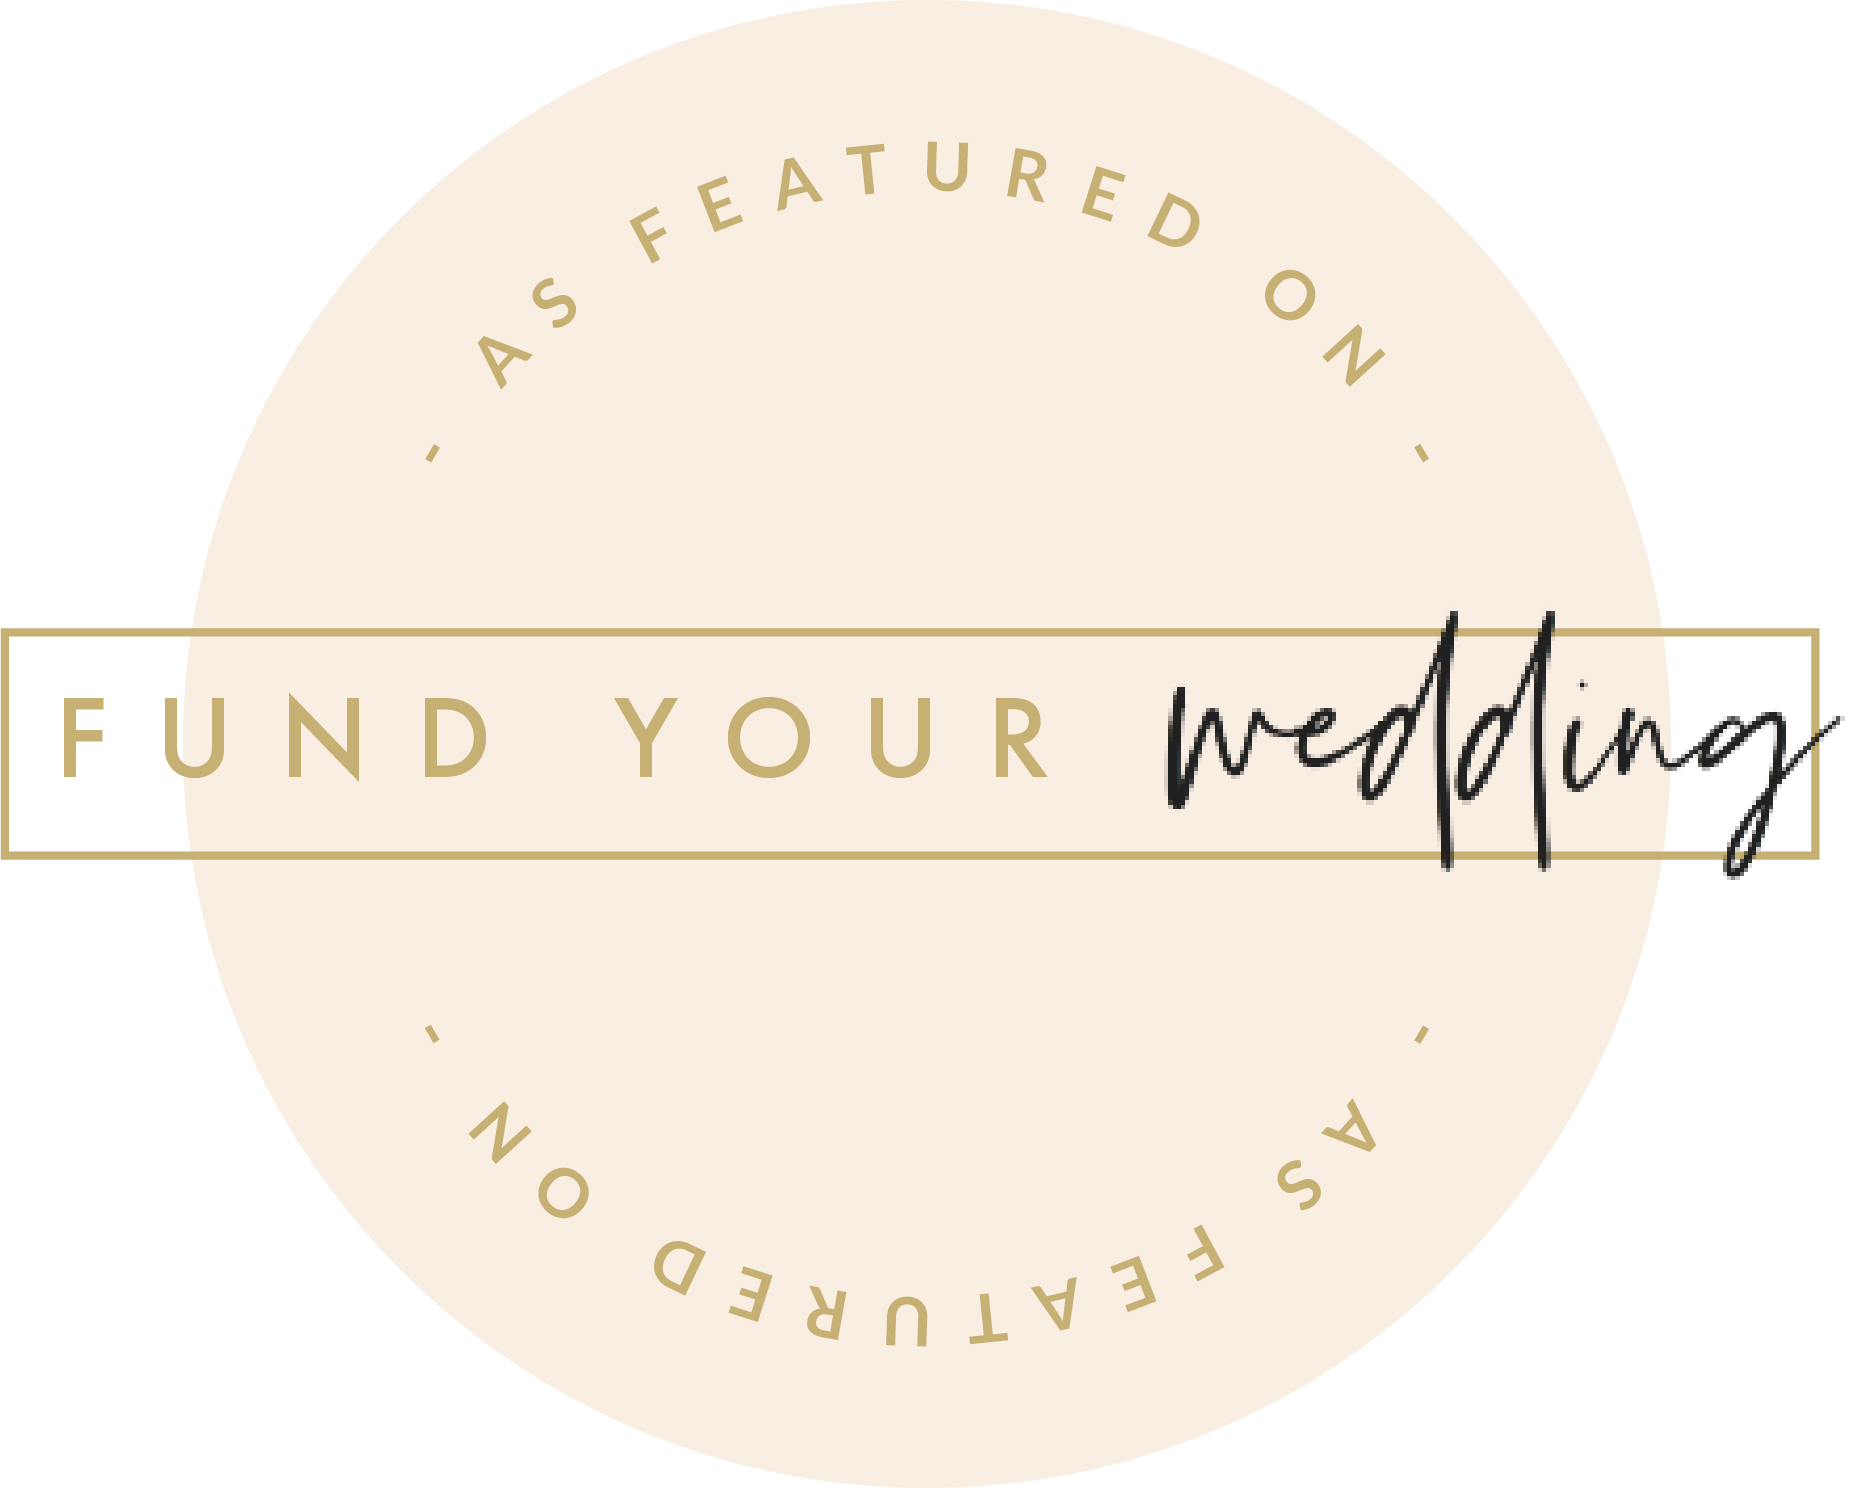 Featured on fundyourwedding.co.uk